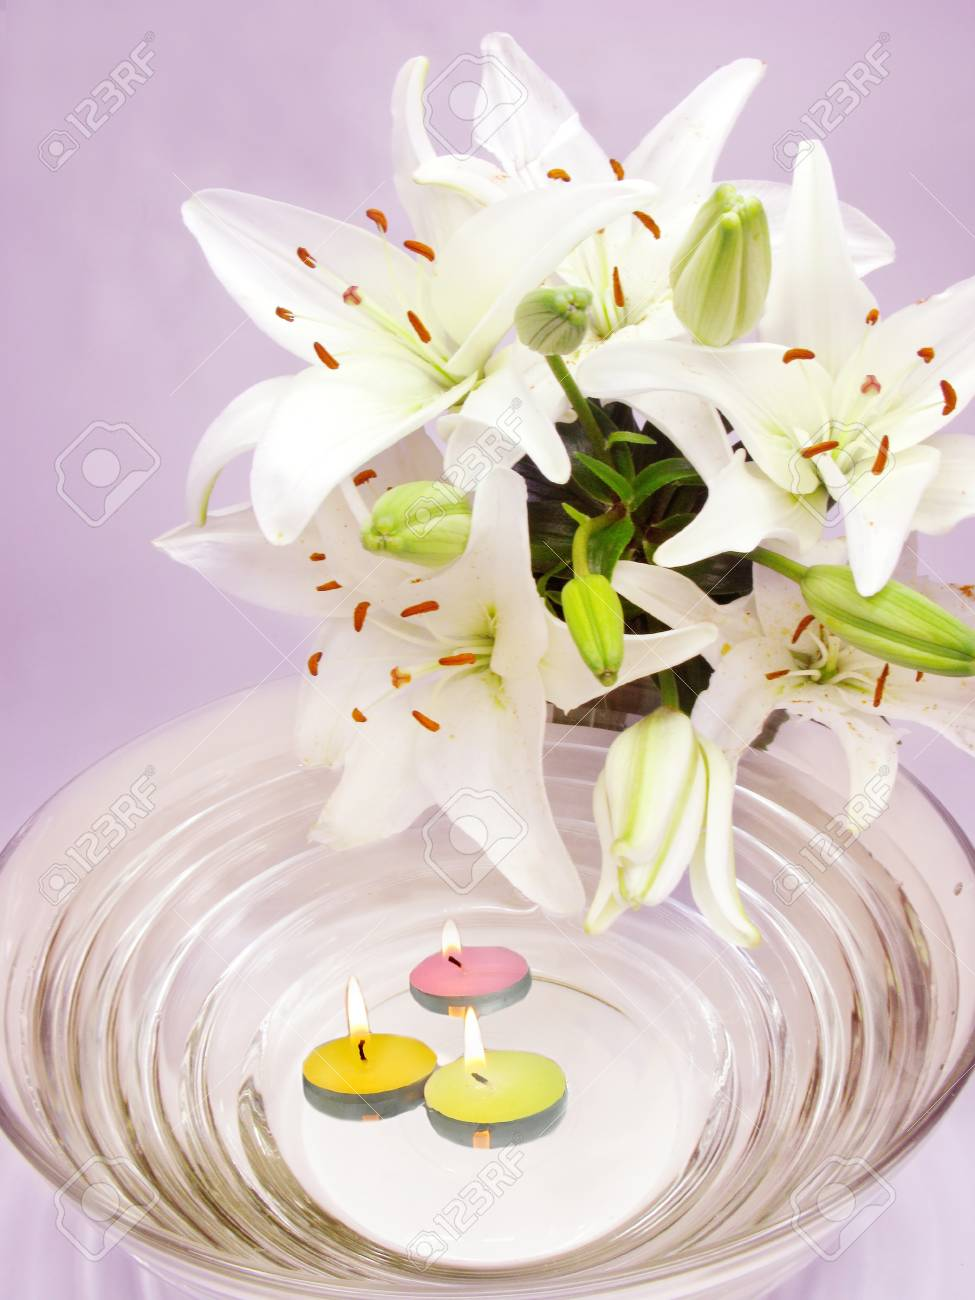 Spa lit candles lilies flowers health care treatment stock photo spa lit candles lilies flowers health care treatment stock photo 11331698 izmirmasajfo